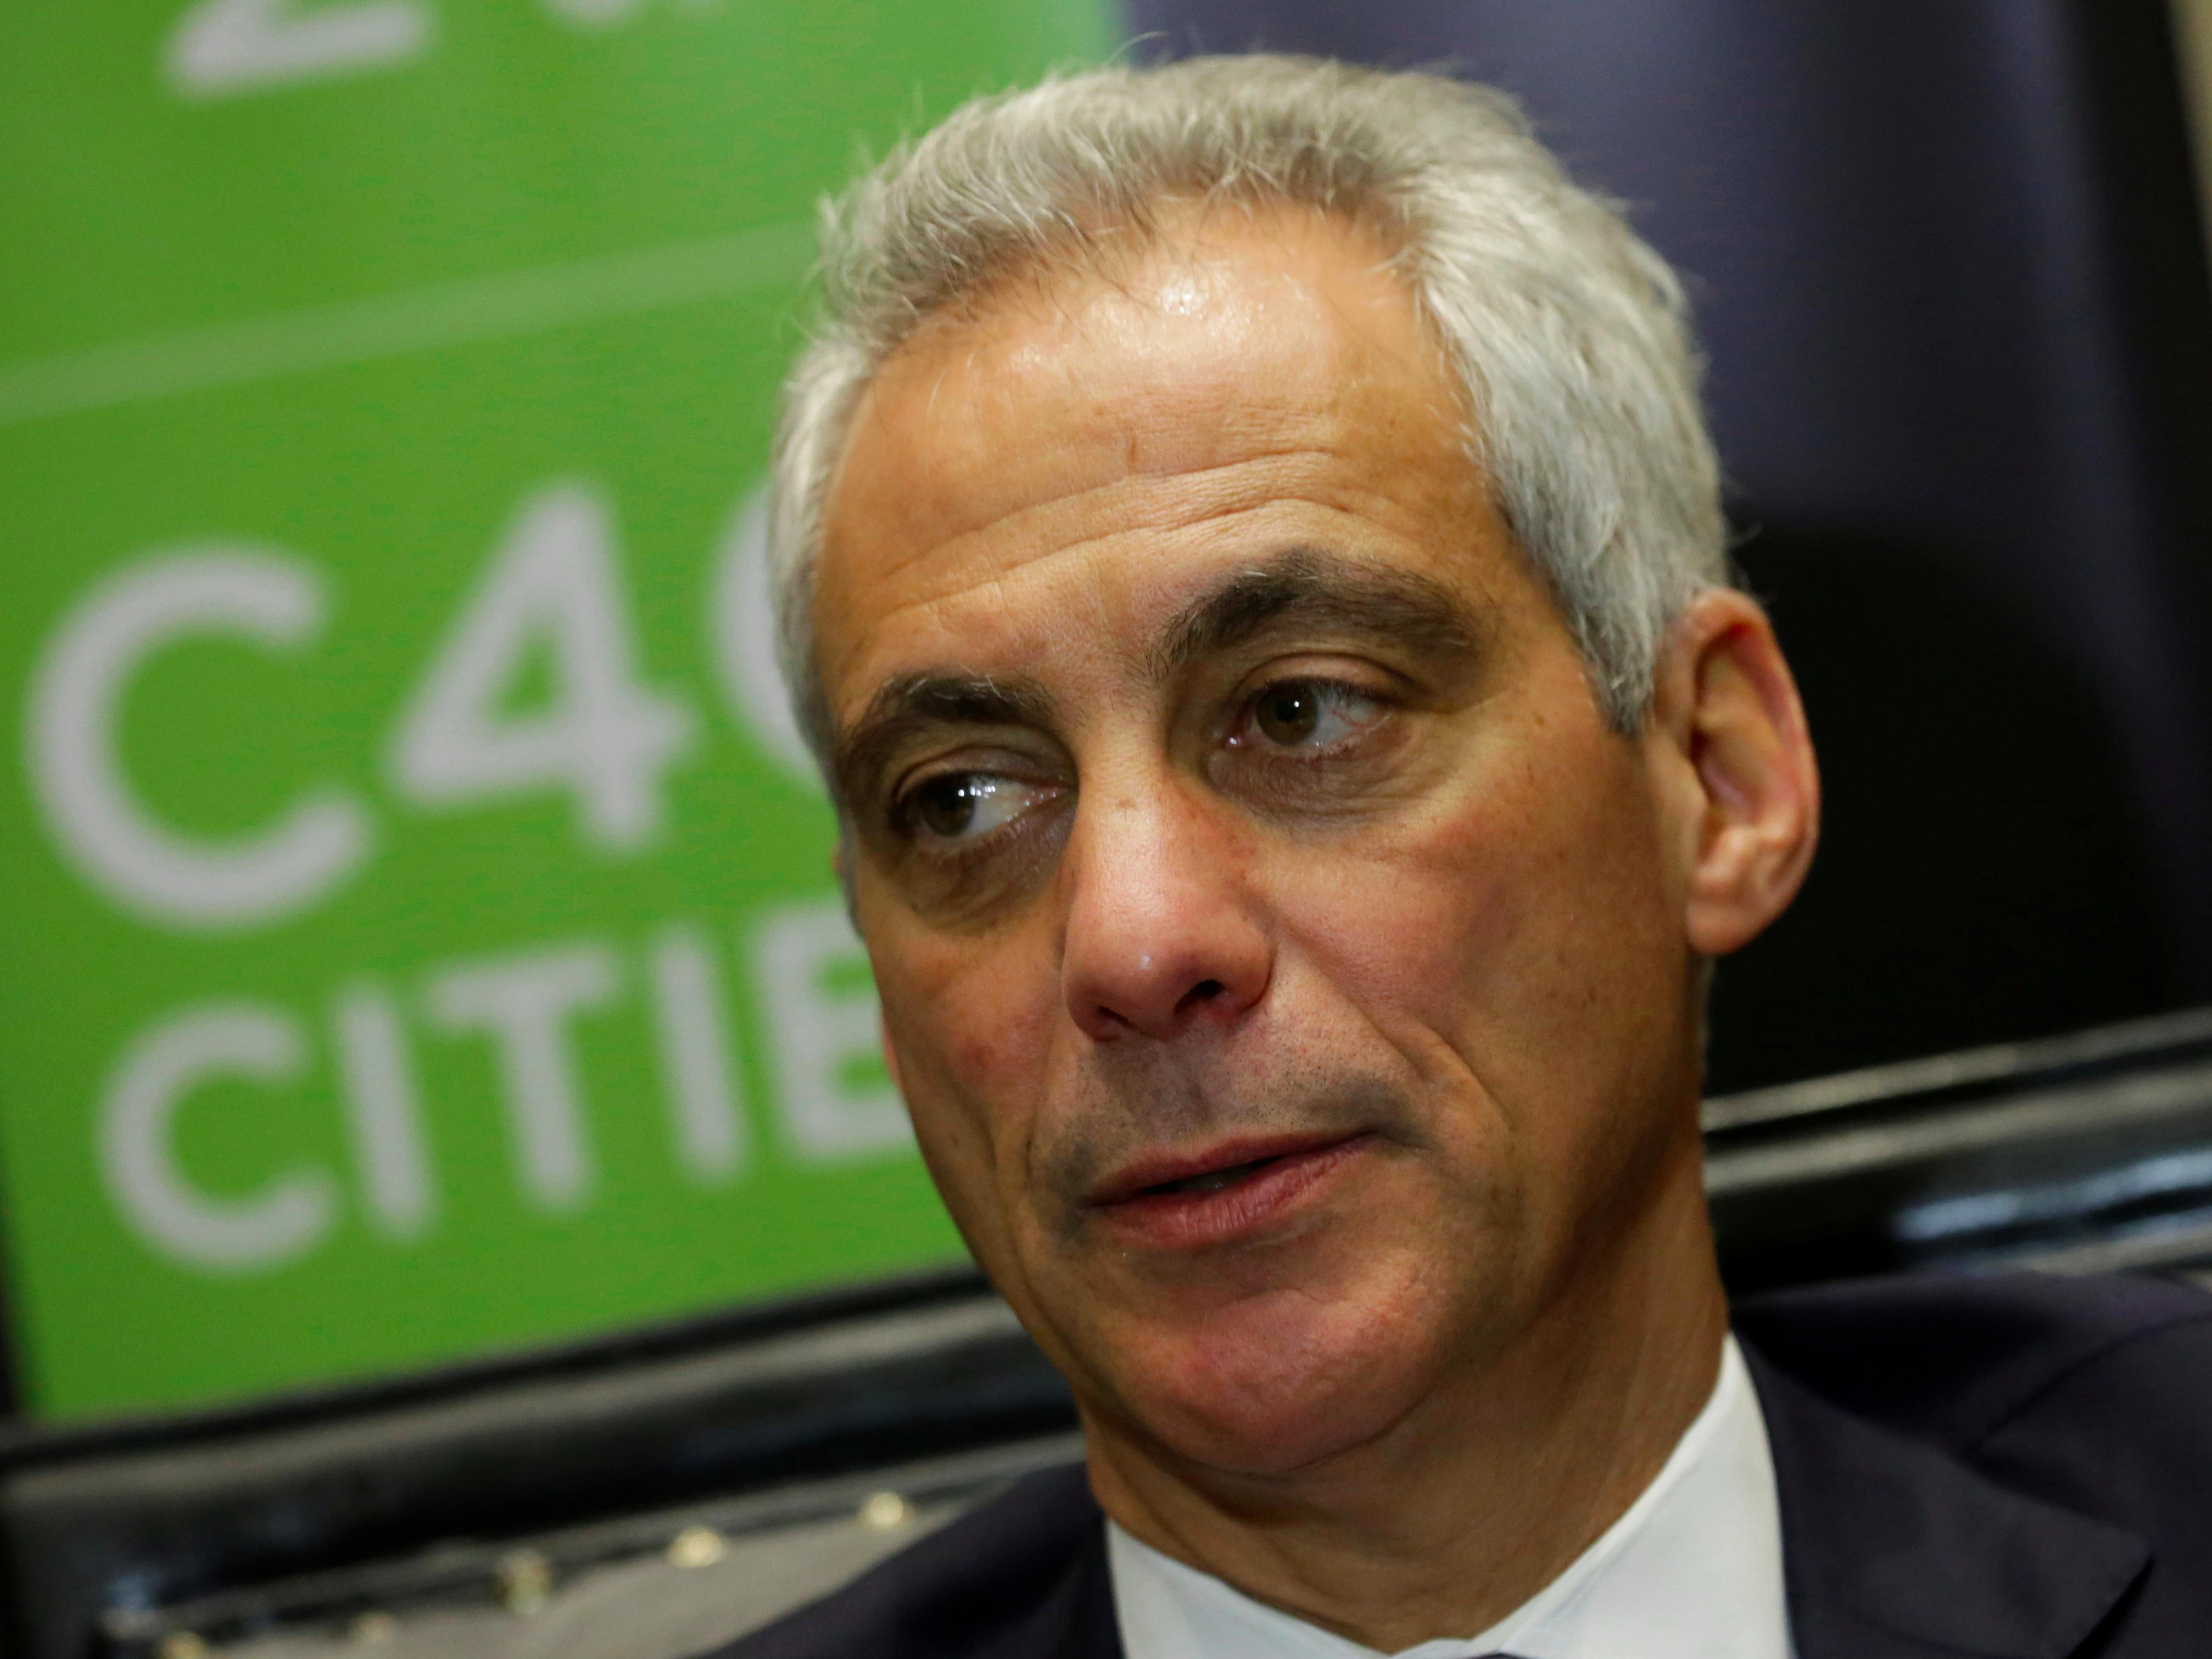 Rahm Emanuel personally delivers letter to Trump asking him to shield young immigrants from deportation